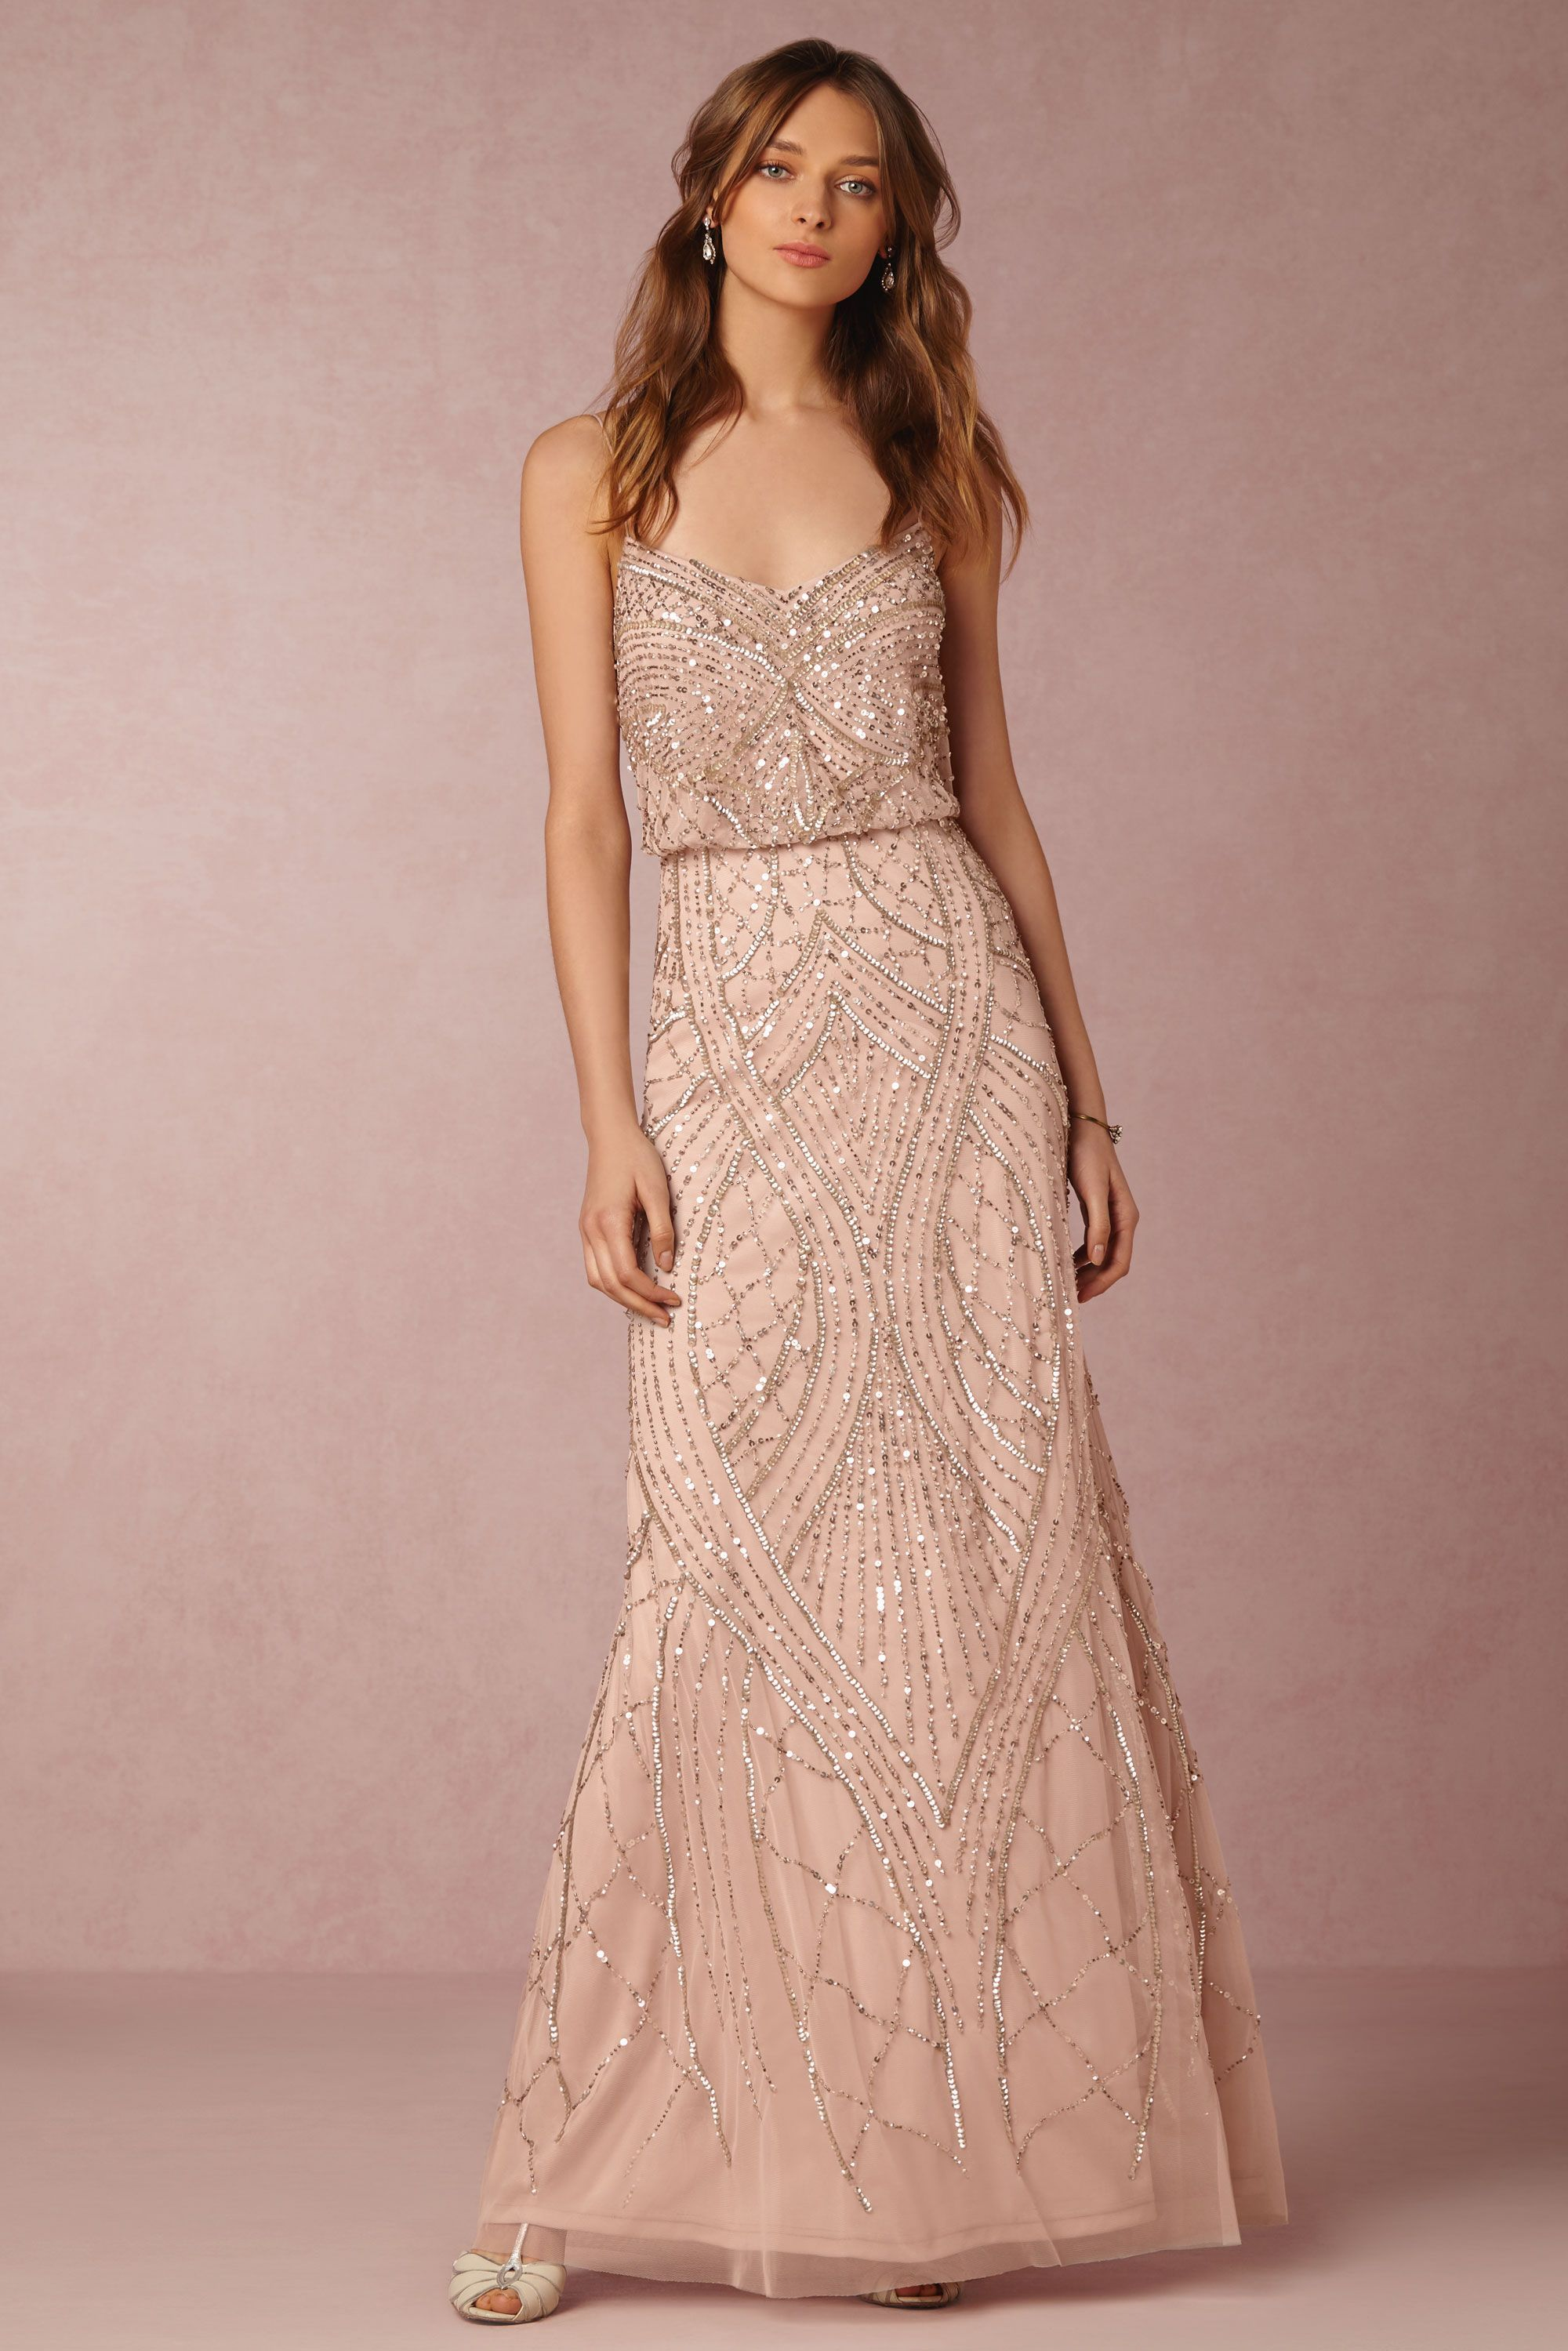 BHLDN Tobin Dress in New Dresses at BHLDN | ropa | Pinterest ...